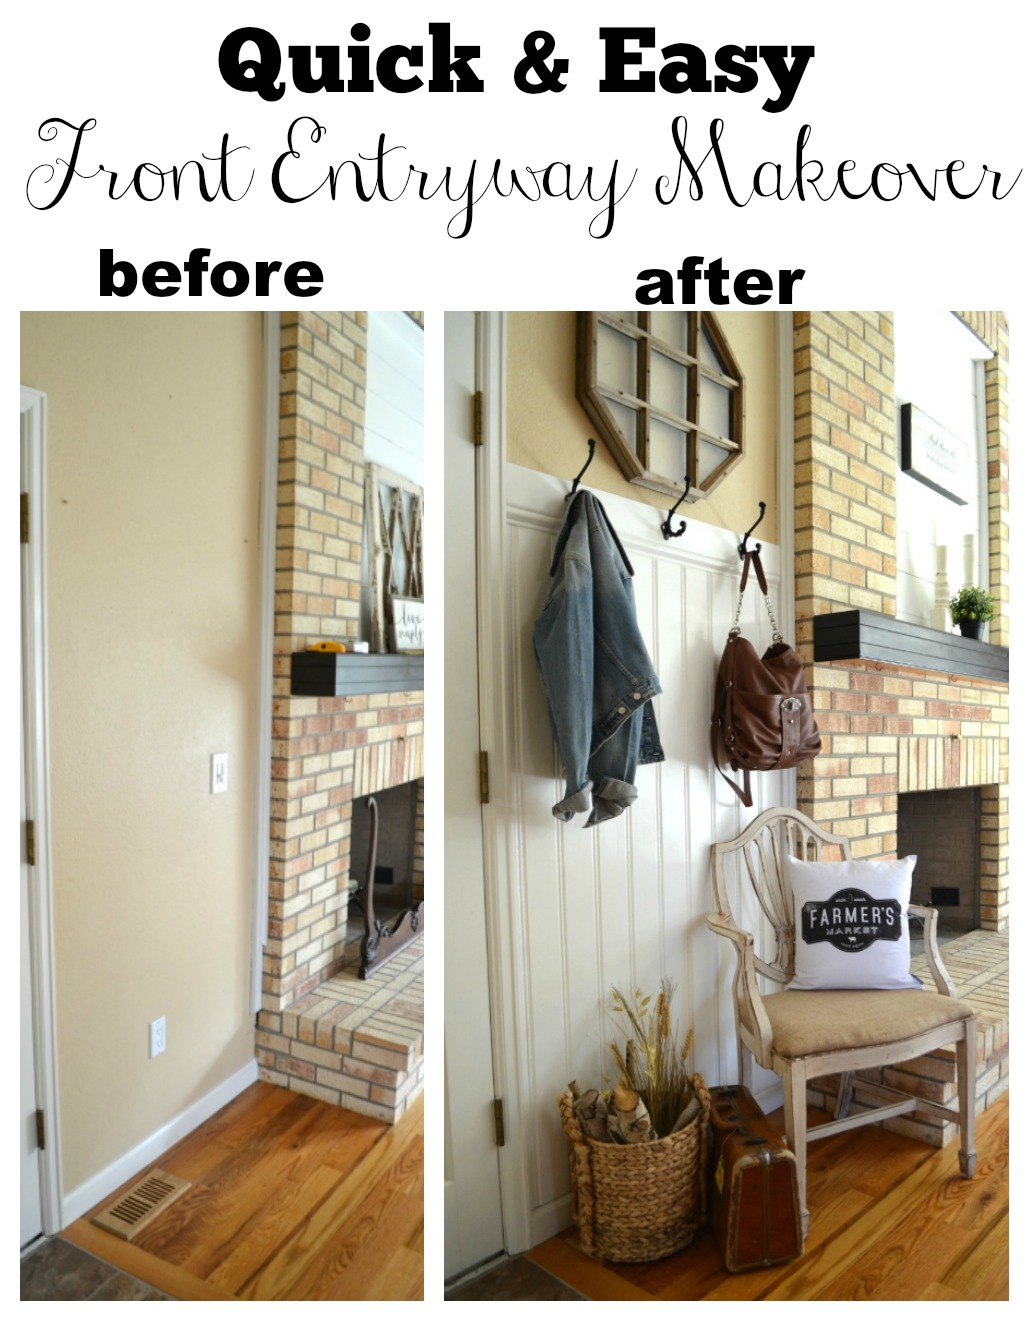 Quick and Easy Farmhouse Style Front Entryway Makeover